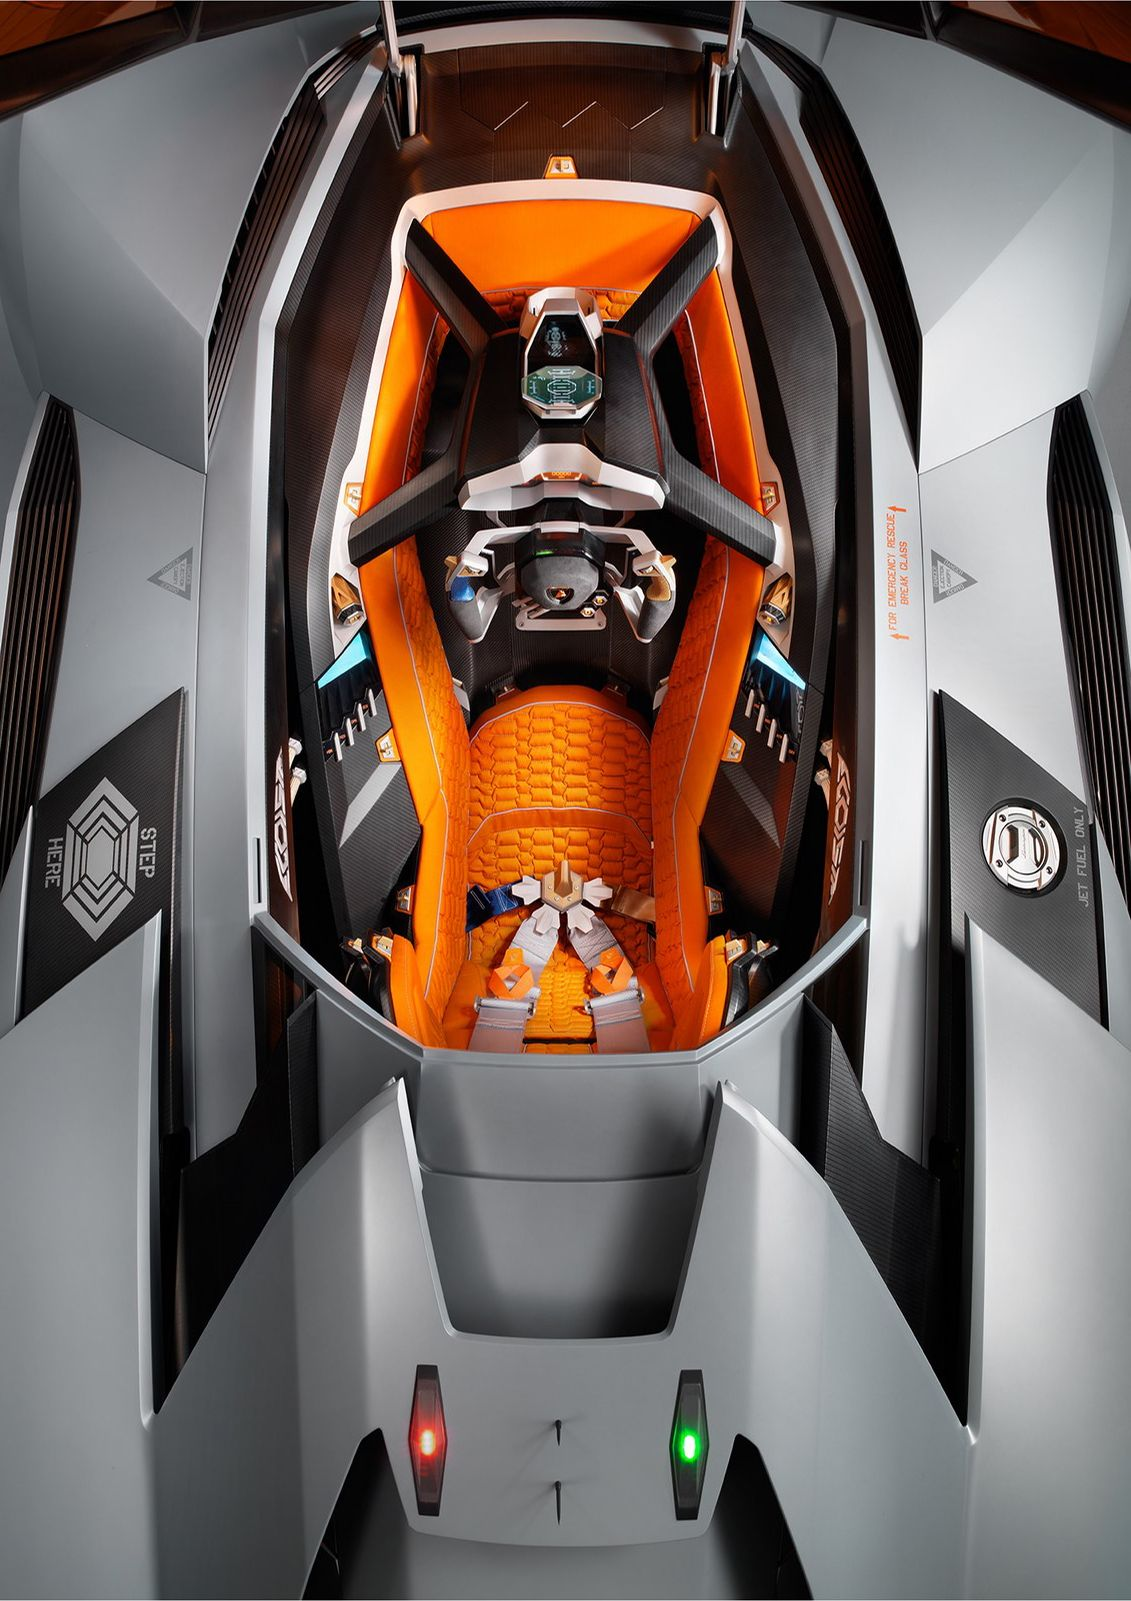 lamborghini egoista engine. matsvri lamborghini egoista concept jet fuel only what kinda engine are they running in this thing all i know is want to drive it now u